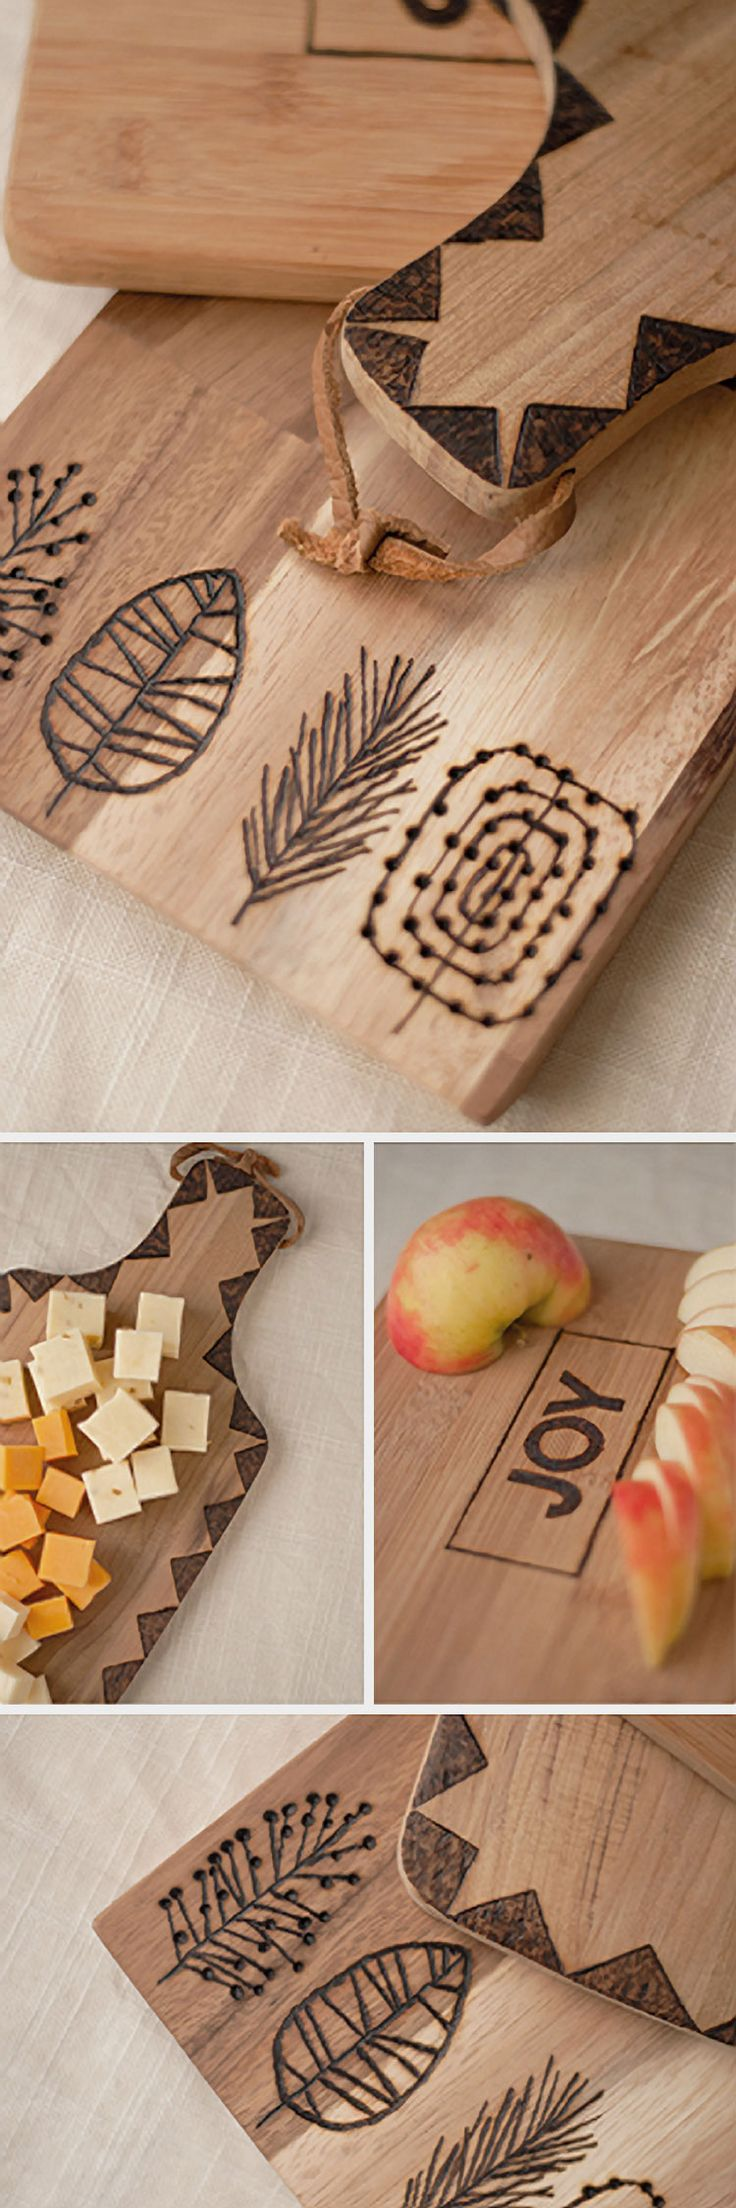 DECORATE A CHOPPING BOARD USING PYROGRAPHY - Caution, hot! The art of pyrography requires a bit of practice, but can be wonderful for individually decorating things made of wood. With a pyrography tool and a few intricate patterns you can create rustic chopping boards to display on the sideboard. Gabrielle from Designmom shows you how to do it!